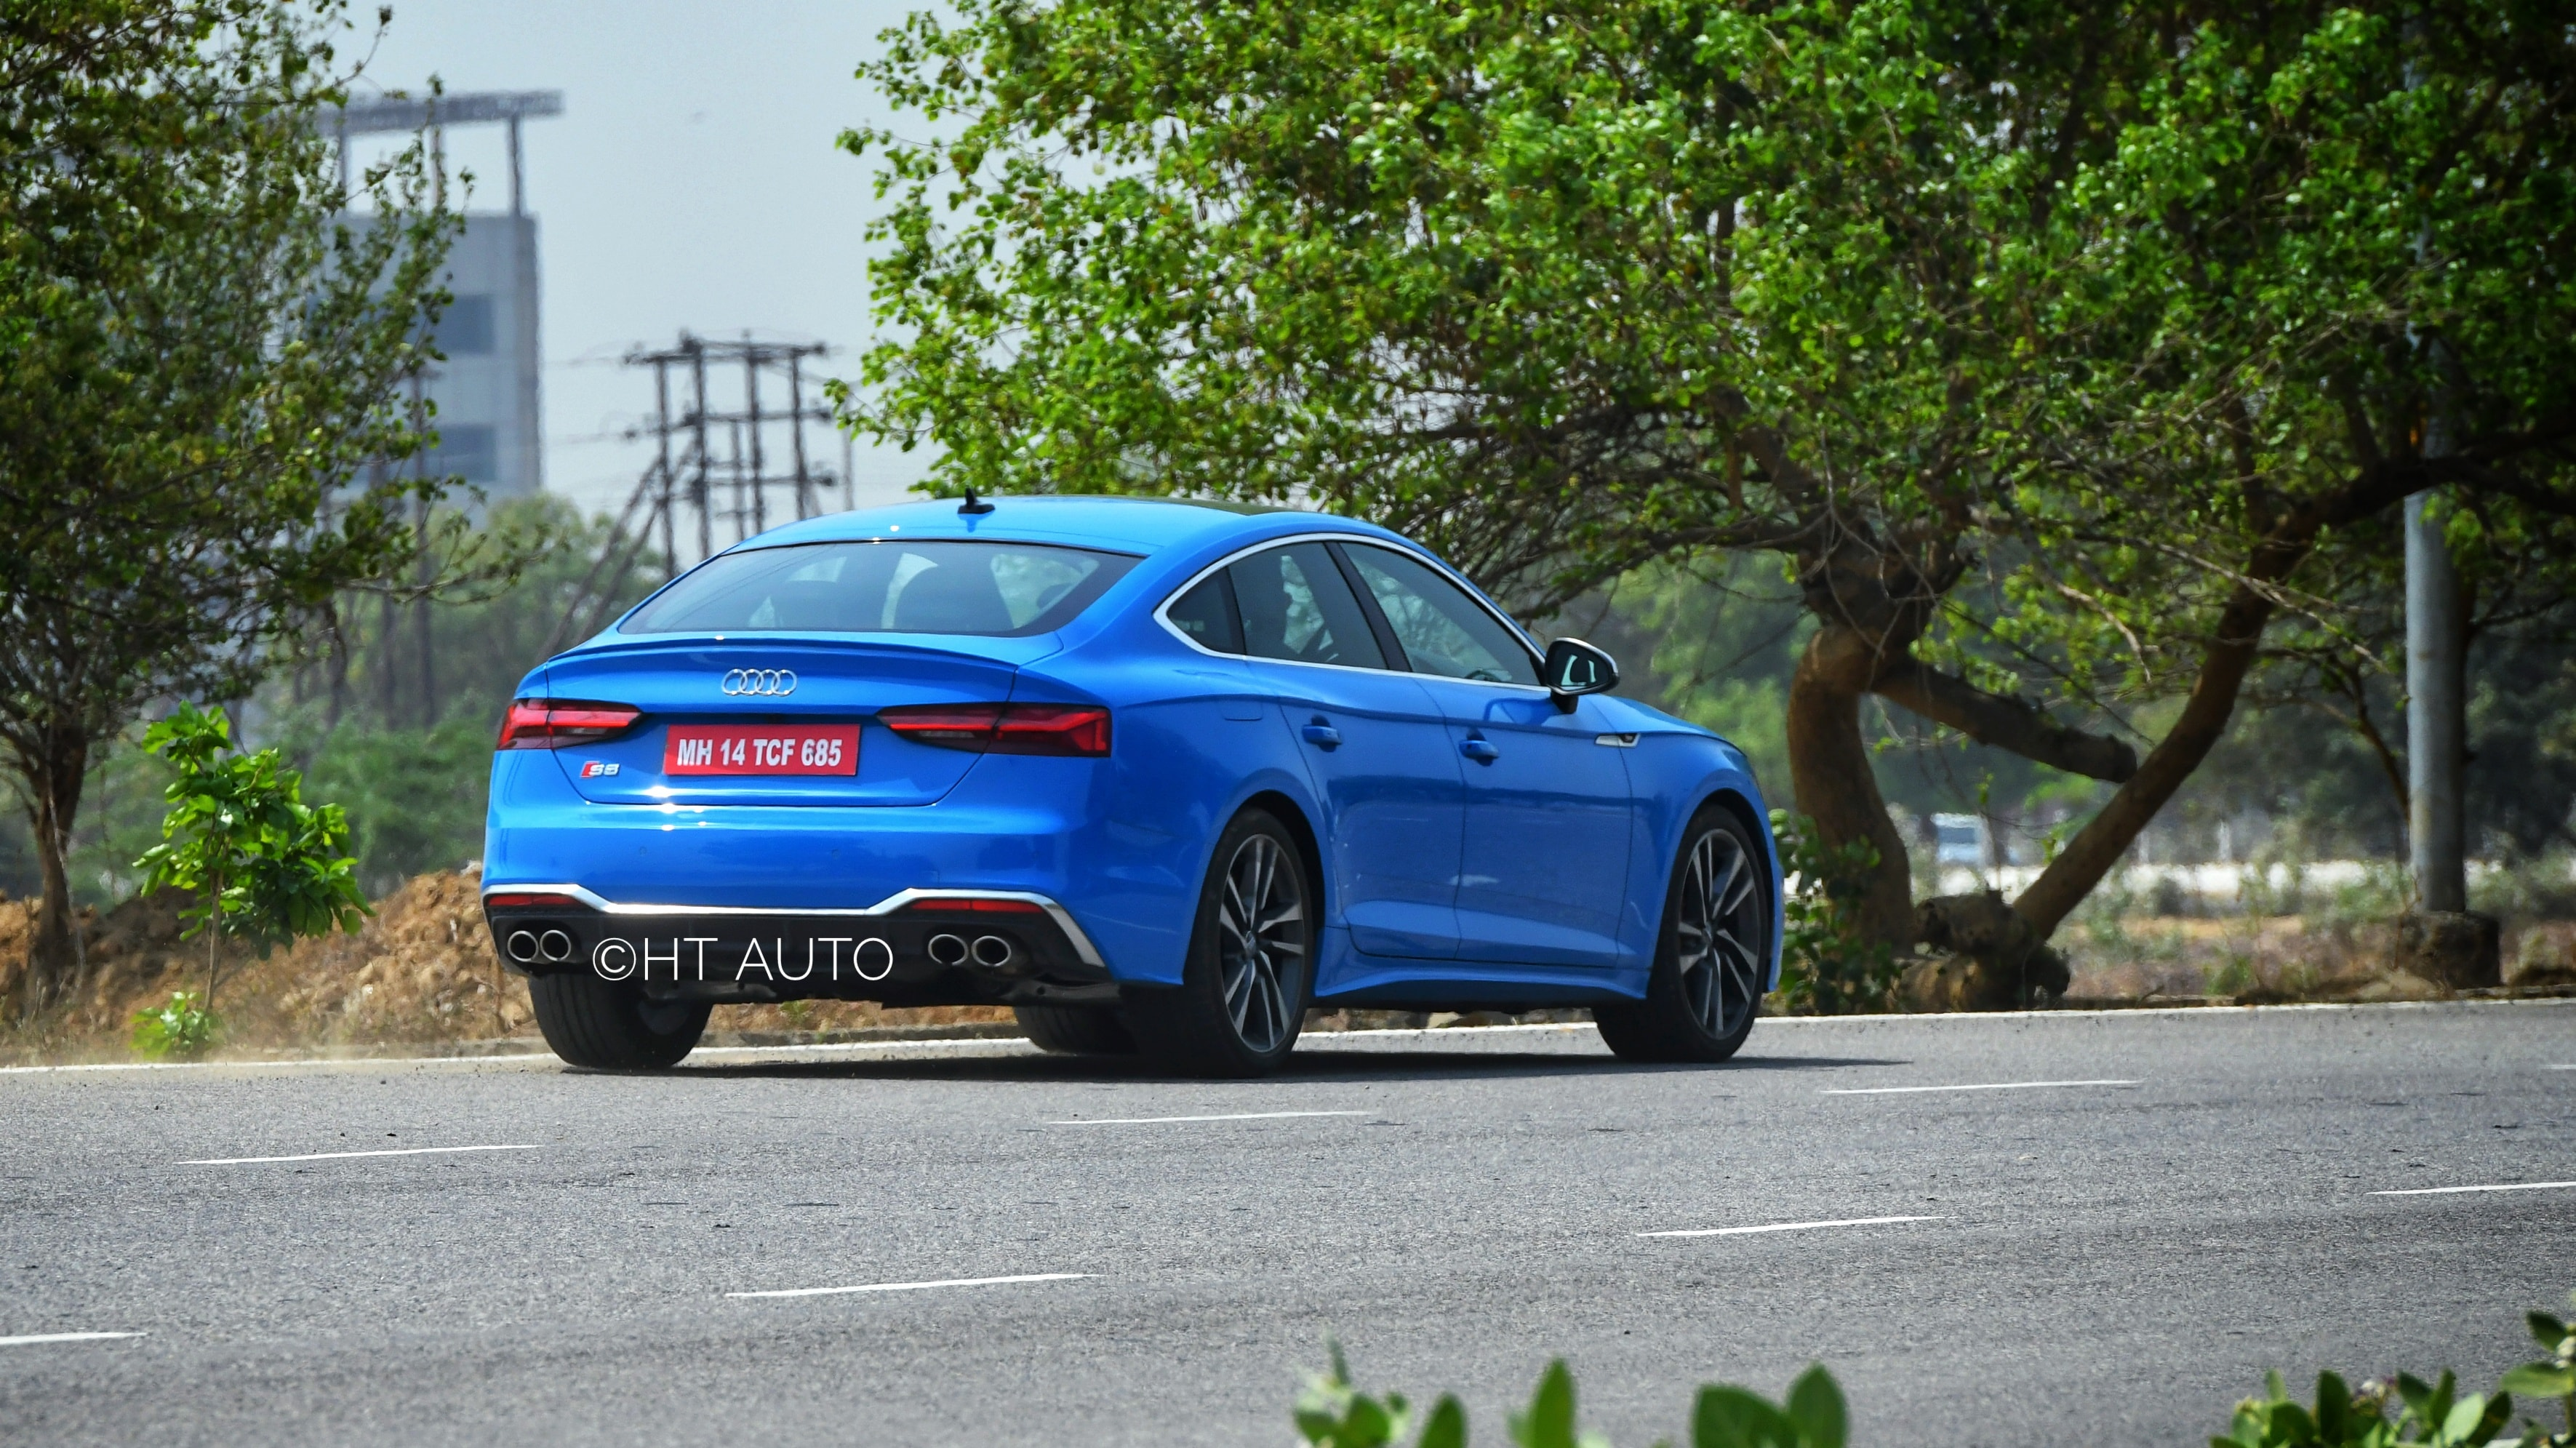 Quattro permanent all-wheel drive with a self-locking center differential makes S5 Sportback remain in control regardless of how much one is pushing it to its extremes.